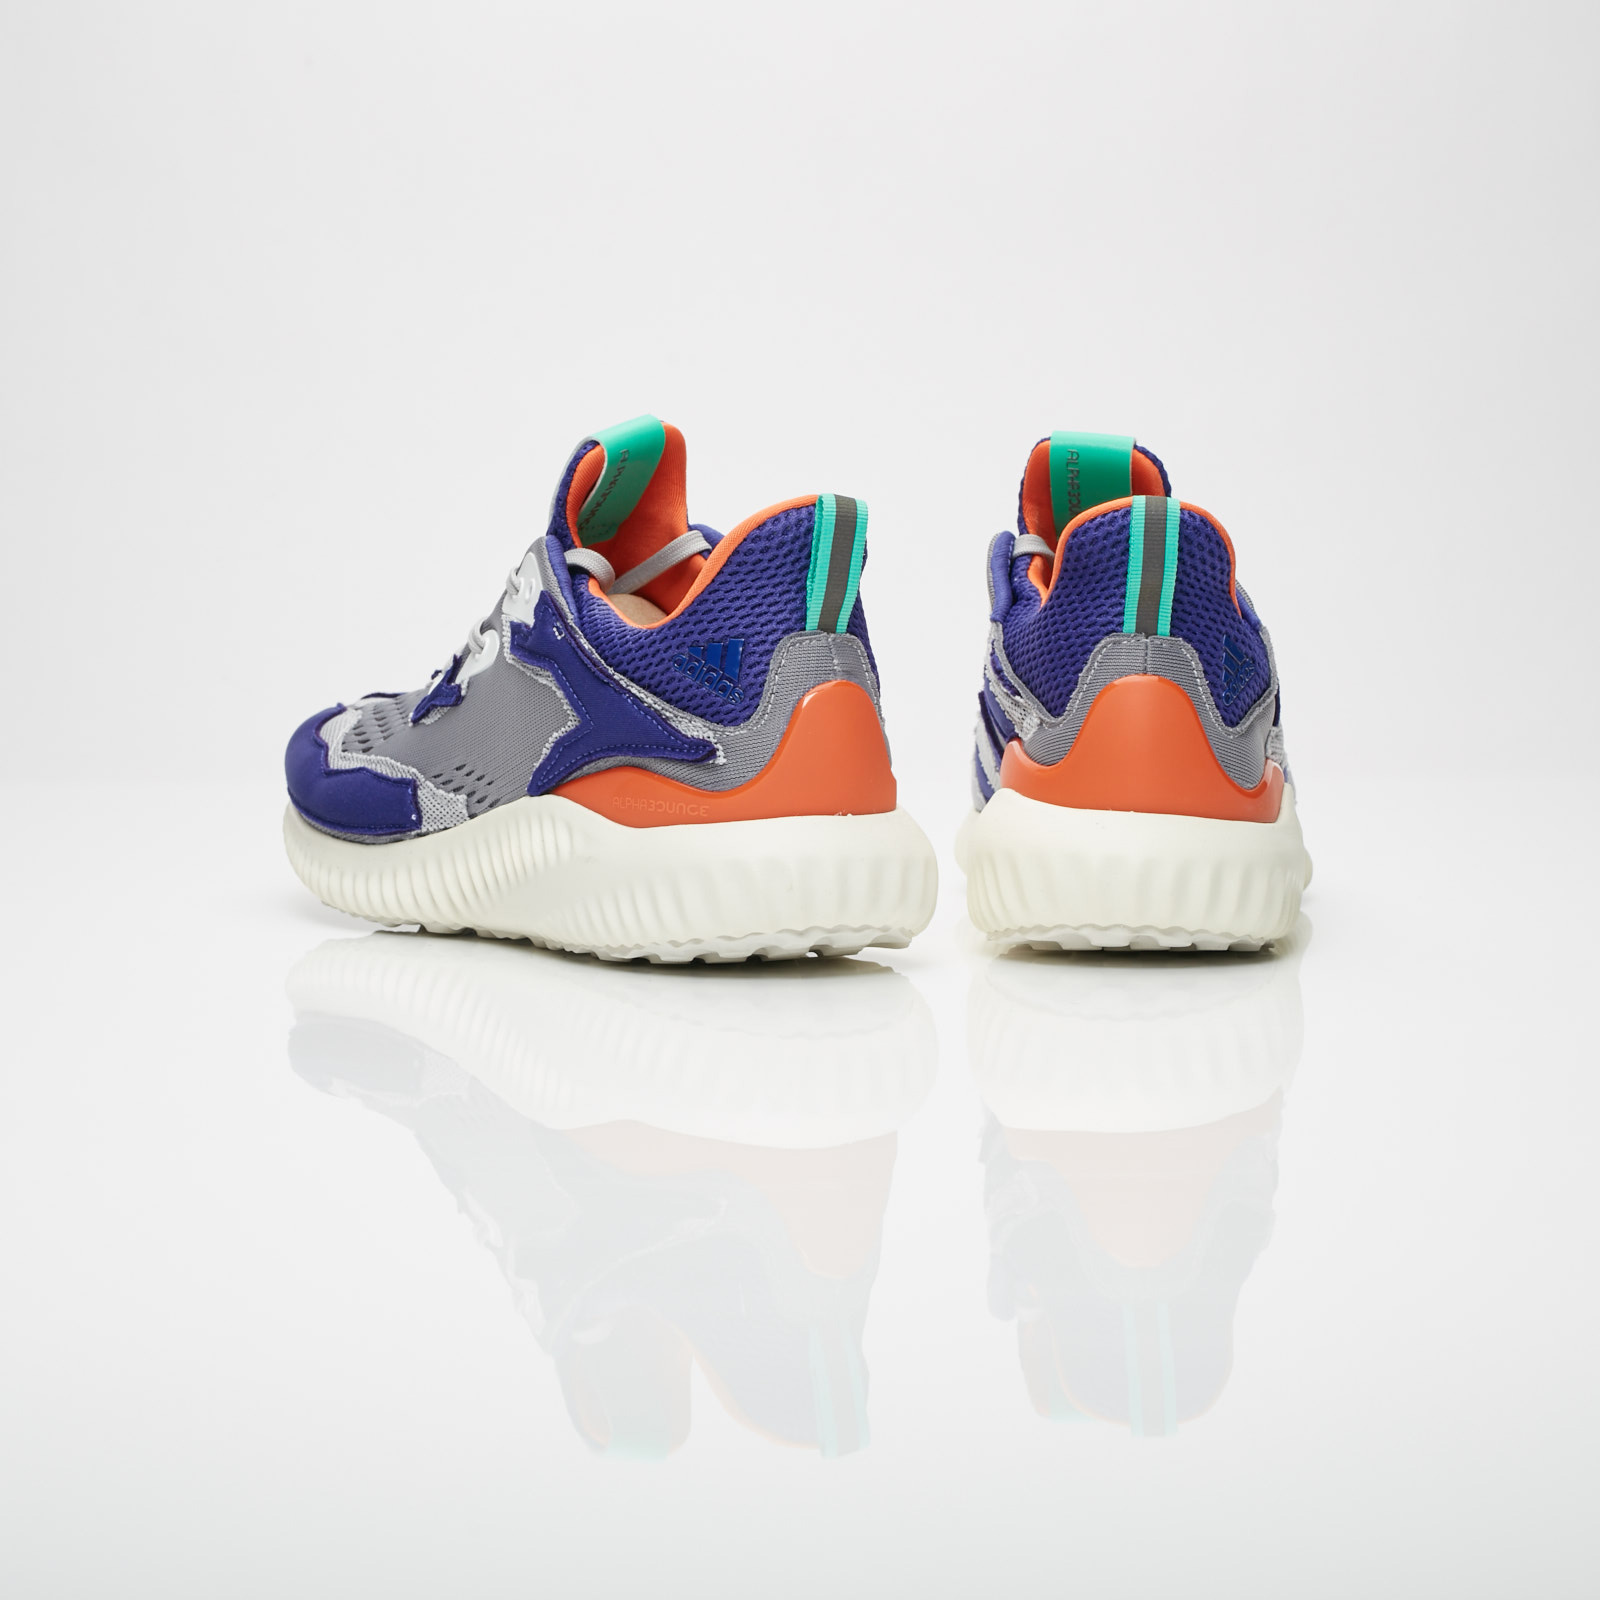 39941bc1a adidas Alphabounce by Kolor - Cq1255 - Sneakersnstuff